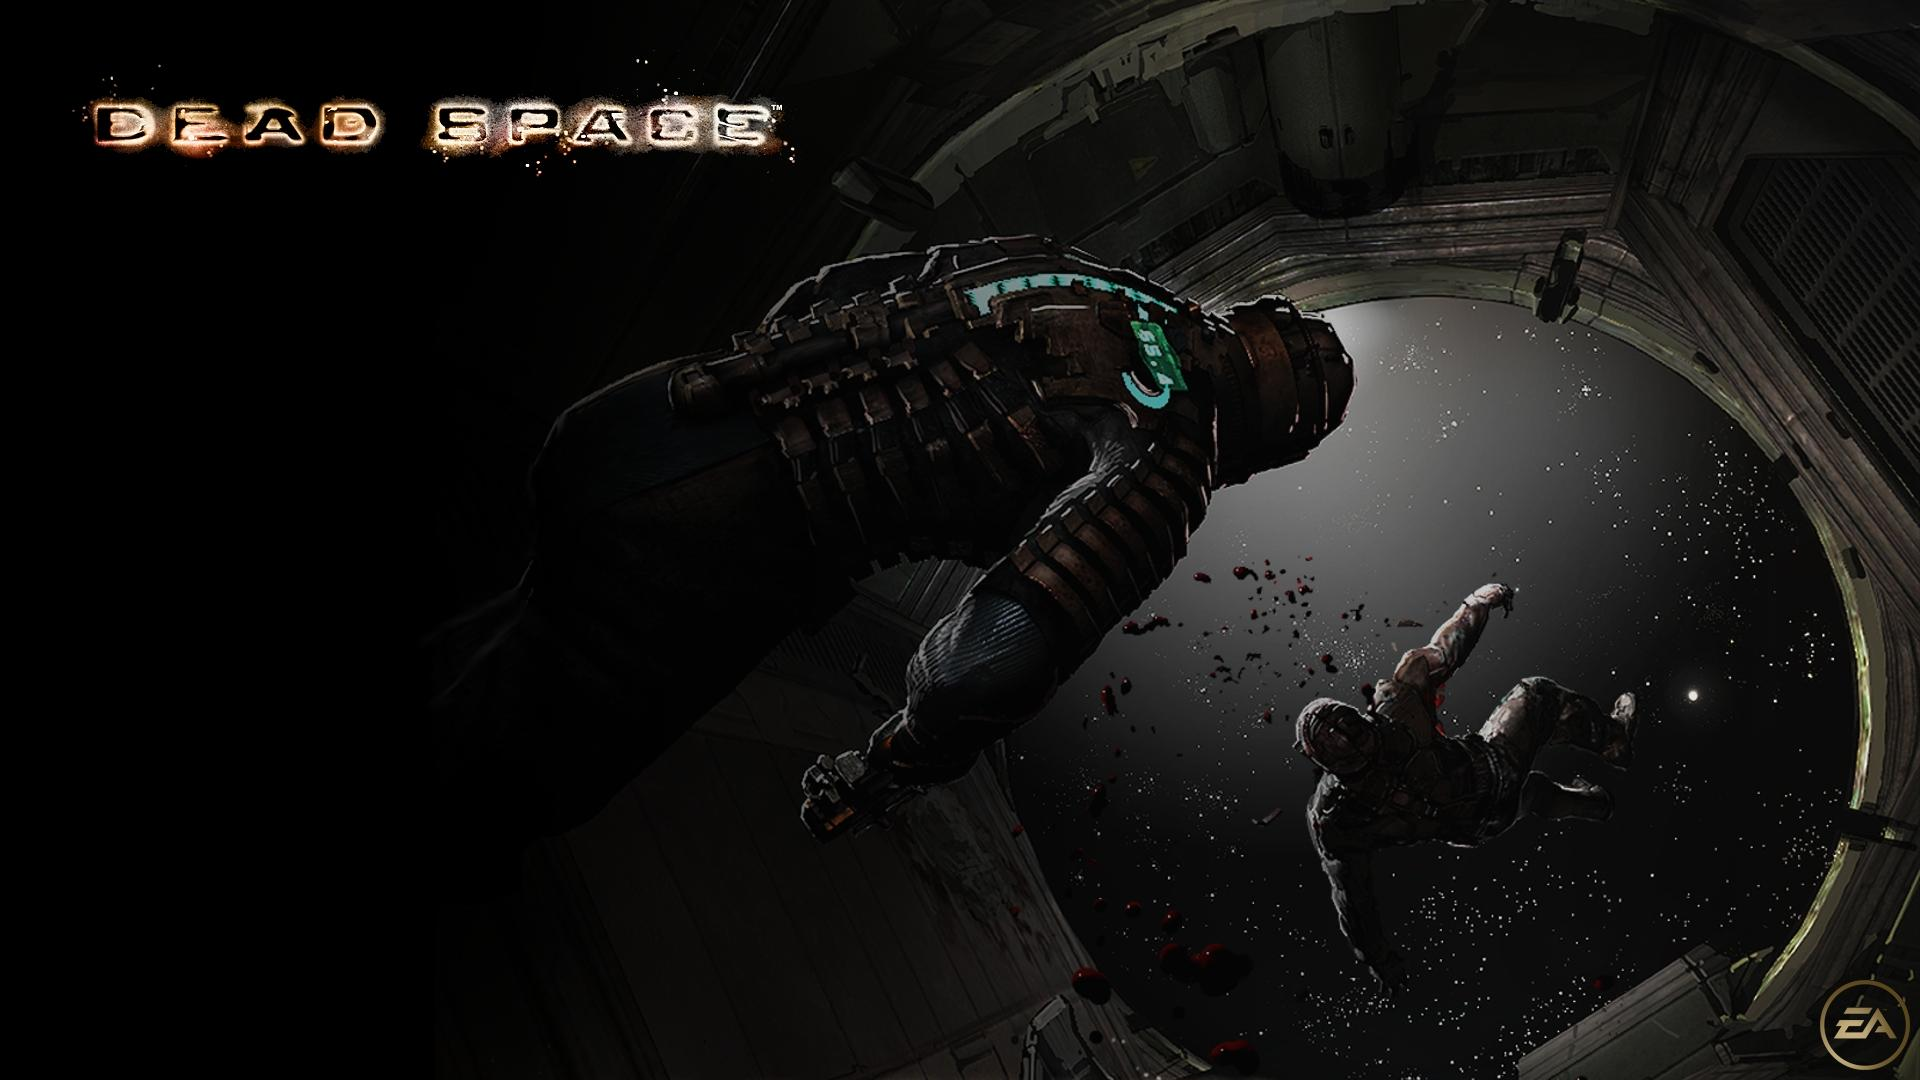 84 Dead Space HD Wallpapers | Backgrounds - Wallpaper Abyss